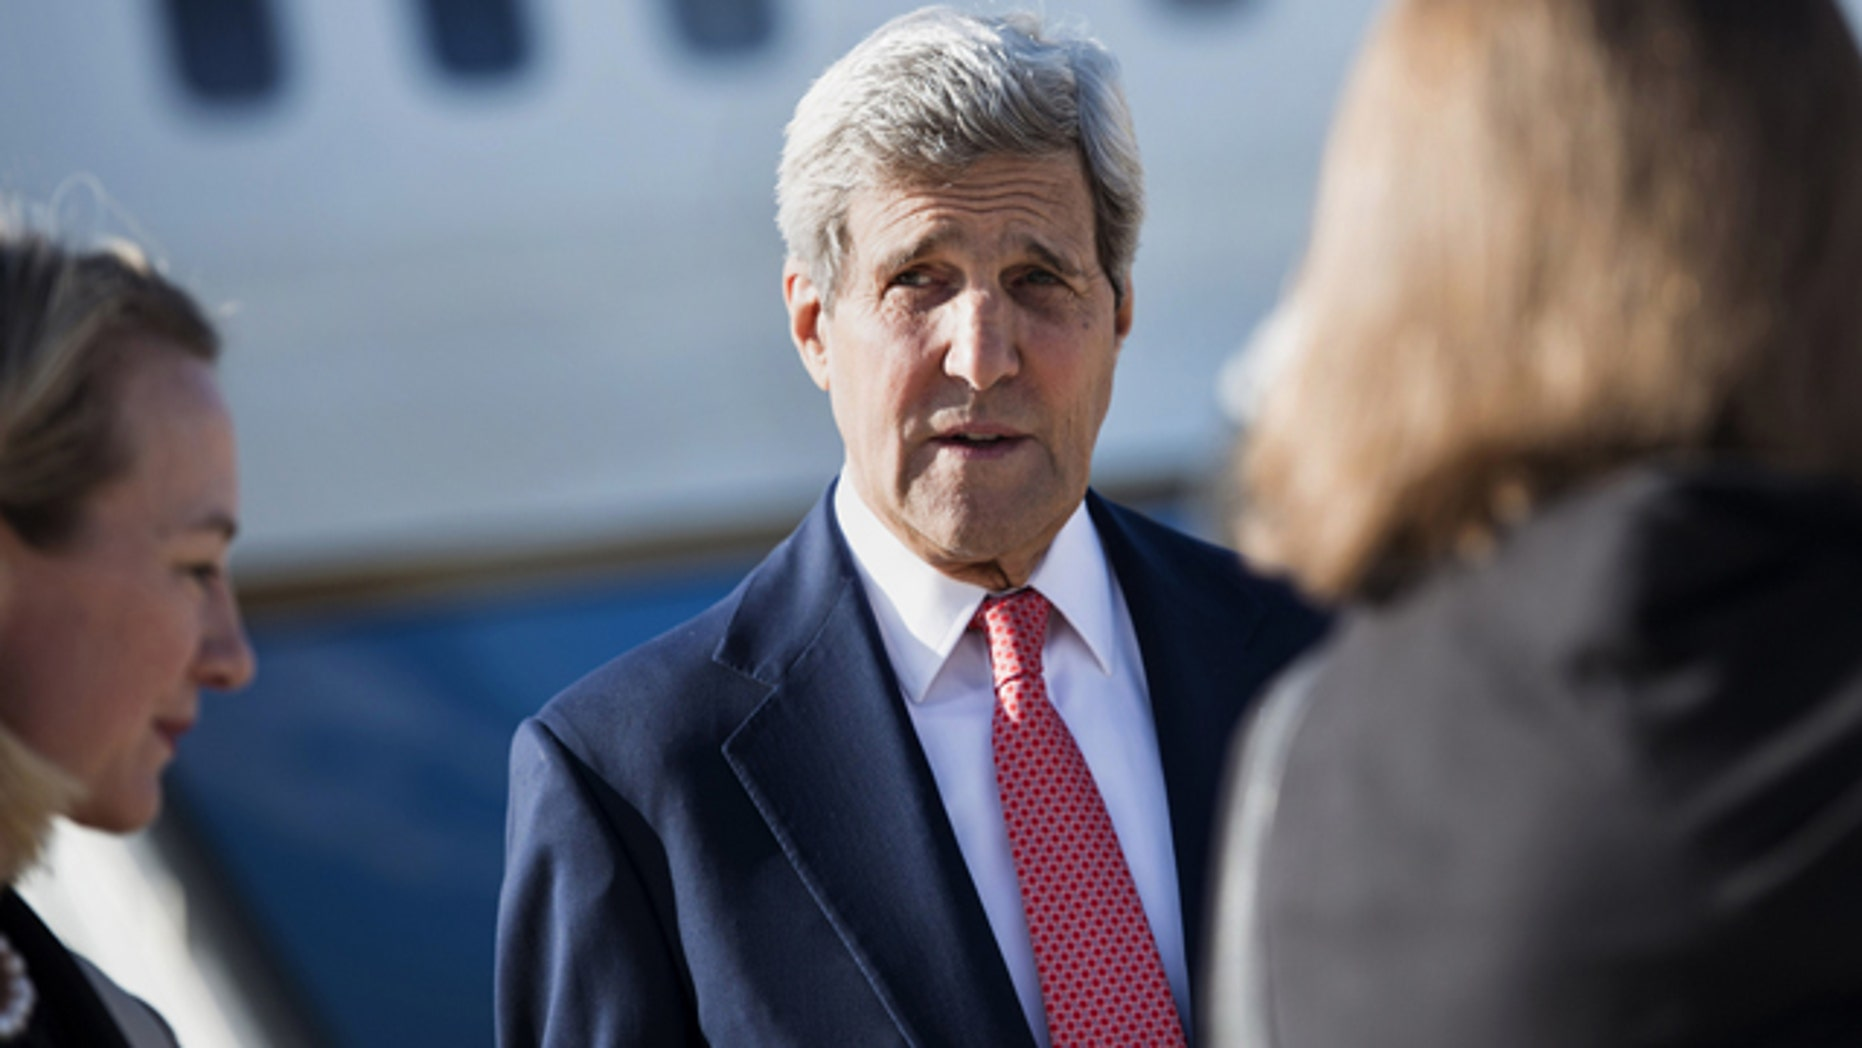 September 10, 2014: U.S. Secretary of State John Kerry arrives at Queen Alia Airport in Amman, Jordan. (AP Photo/Brendan Smialowski, Pool)